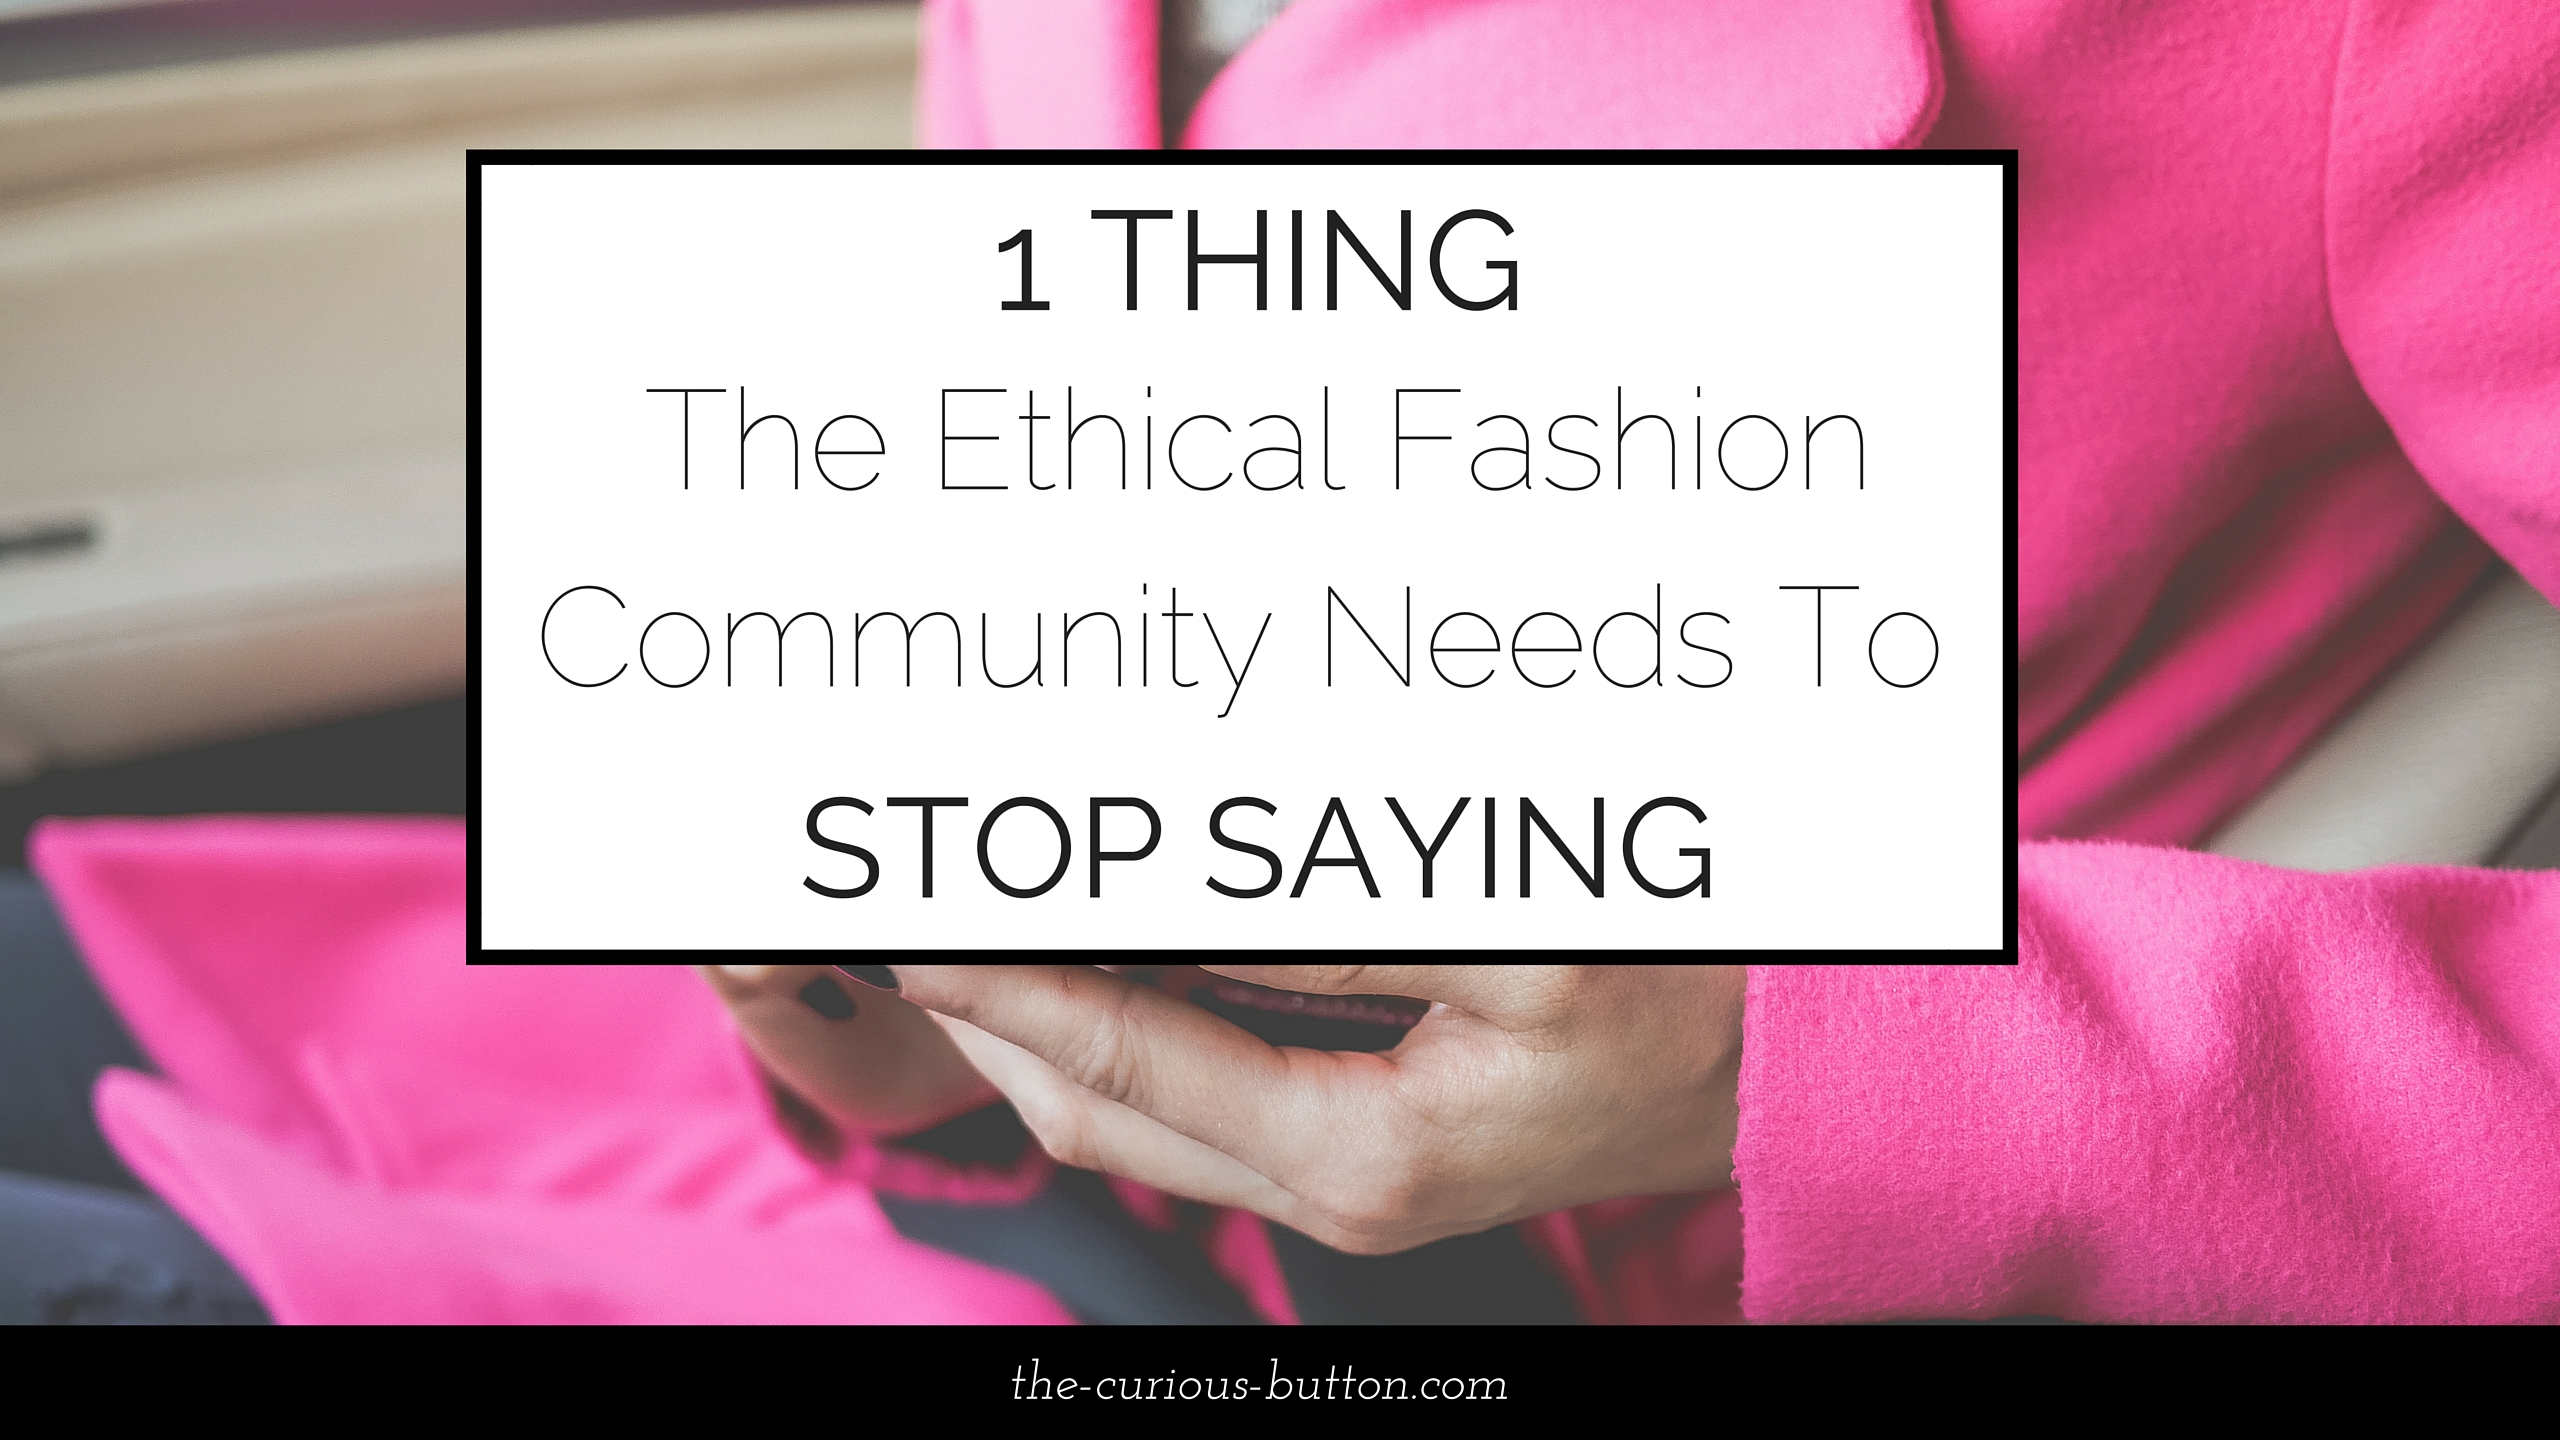 1 Thing the Ethical Fashion Community Needs to Stop Saying   The Curious Button